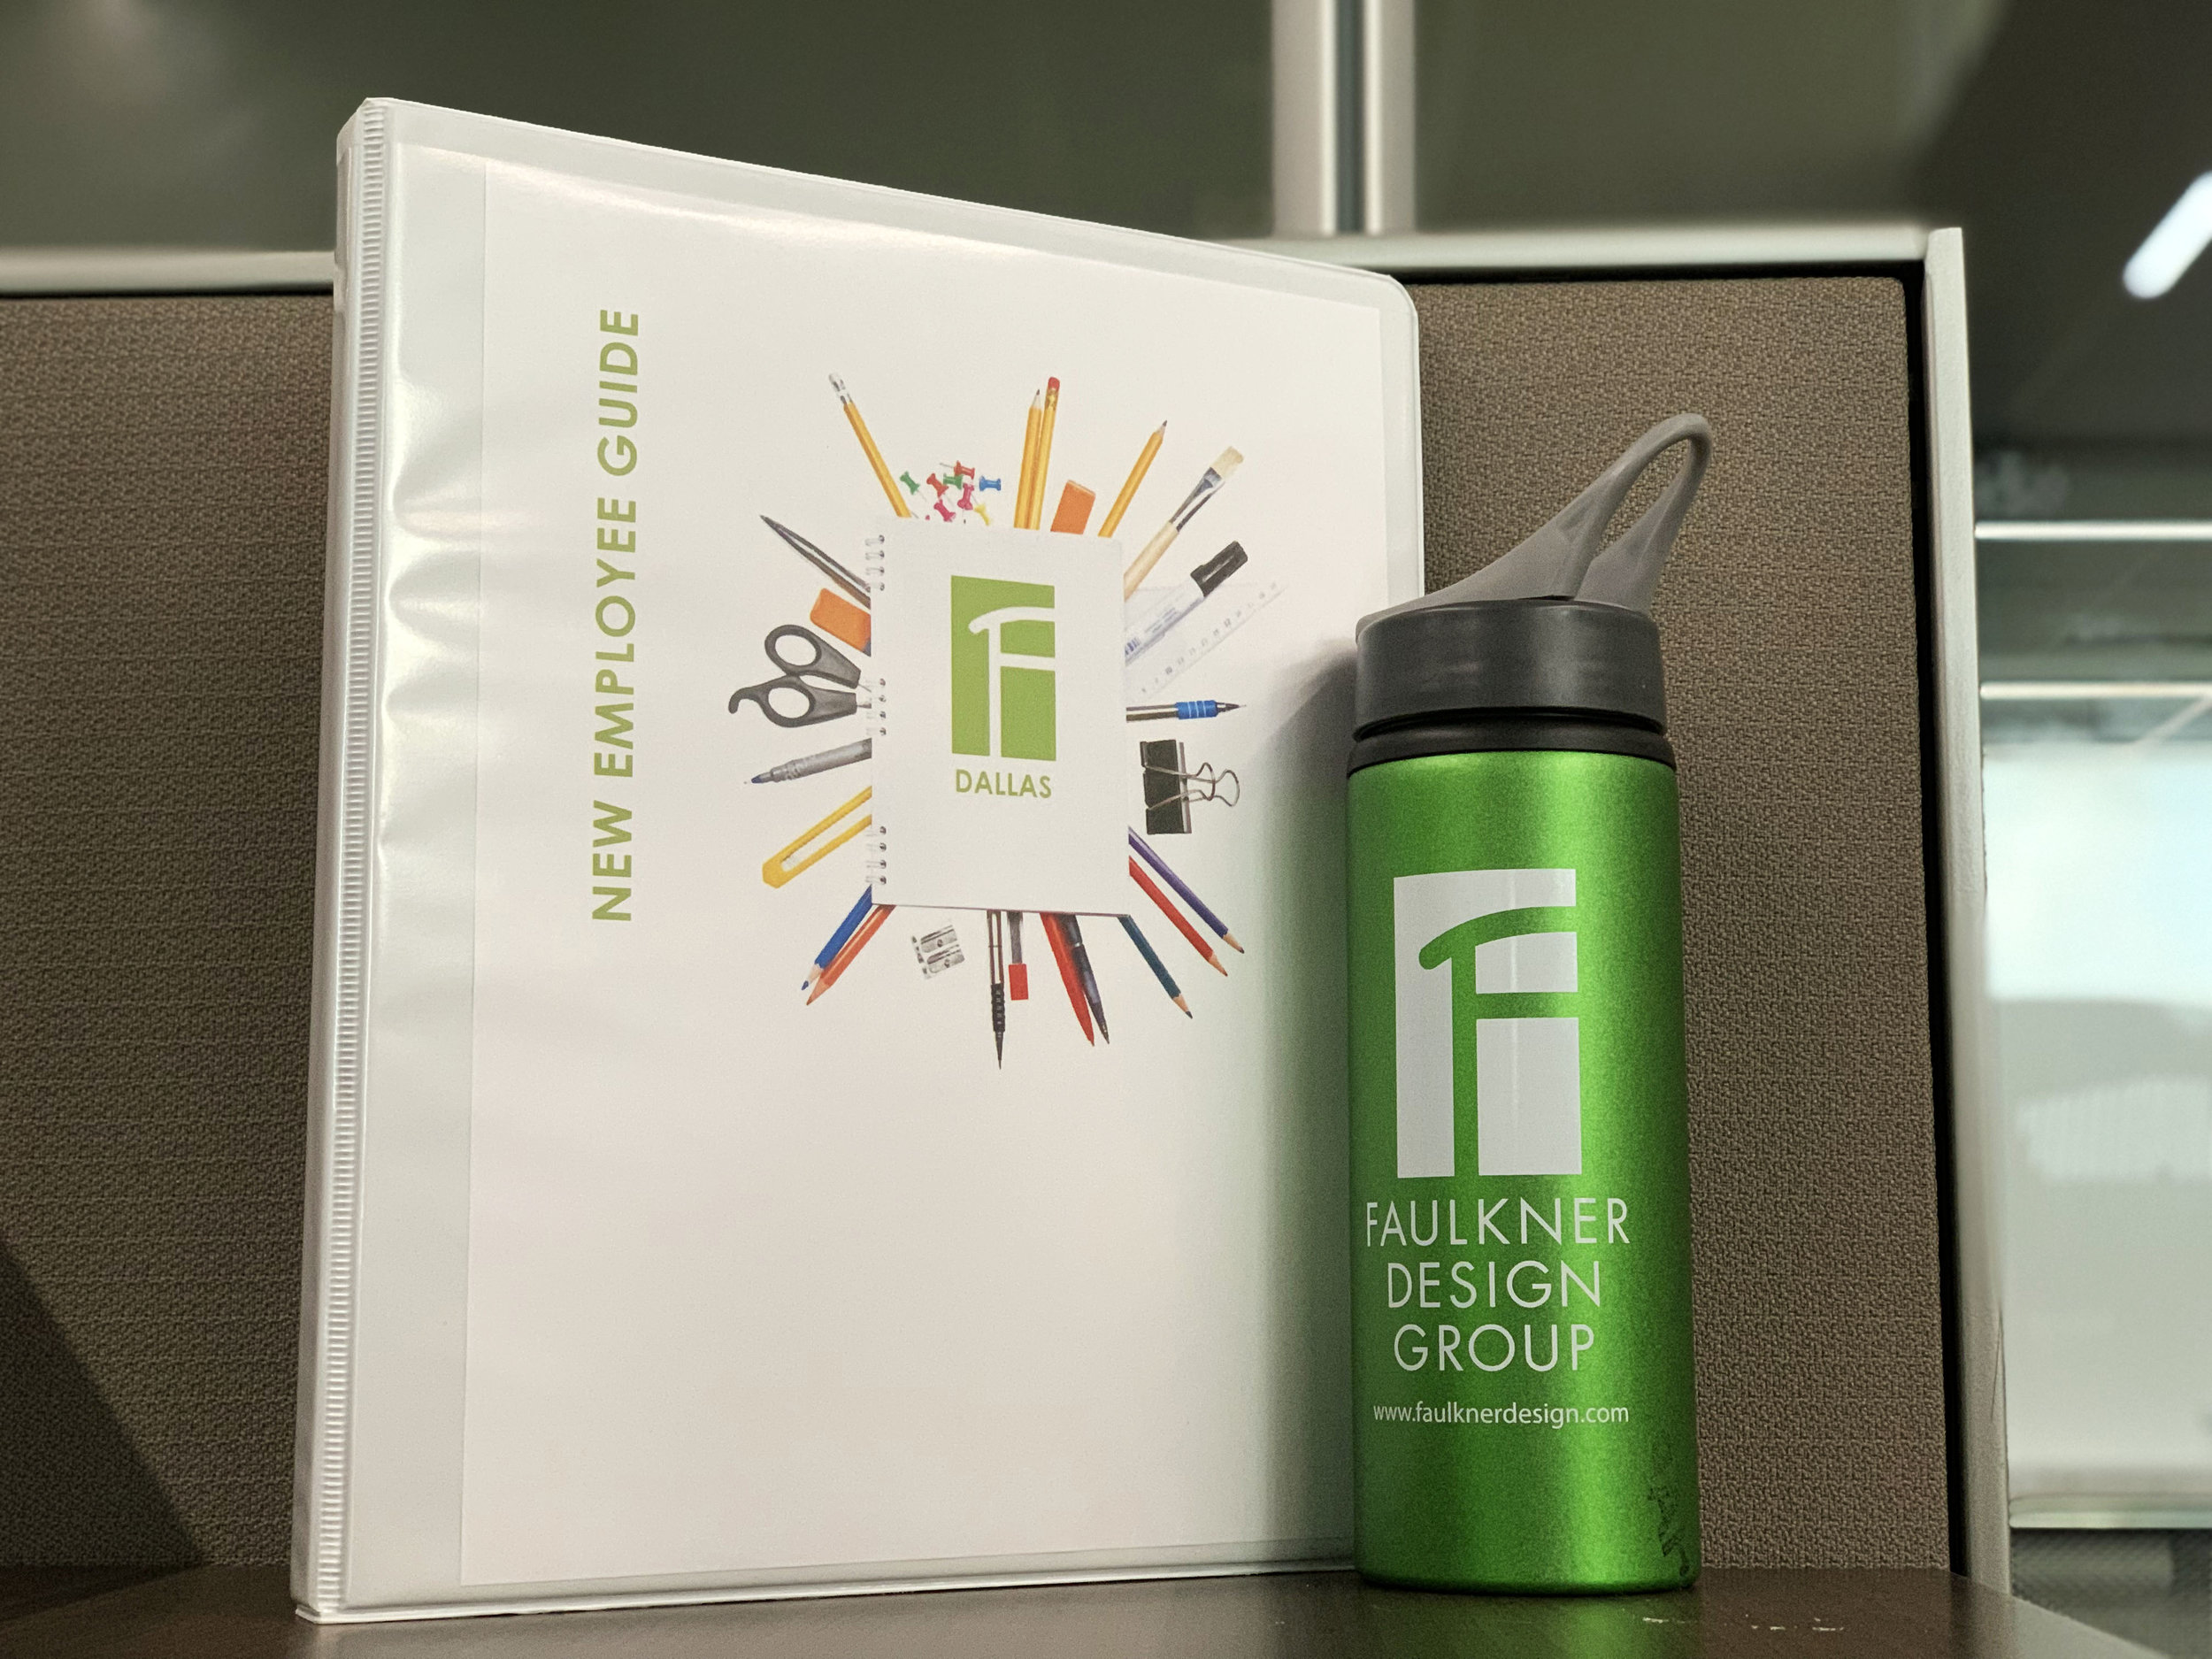 My handy-dandy New Employee Guide, complete with FDG water bottle, two of the many things I received upon my first week!